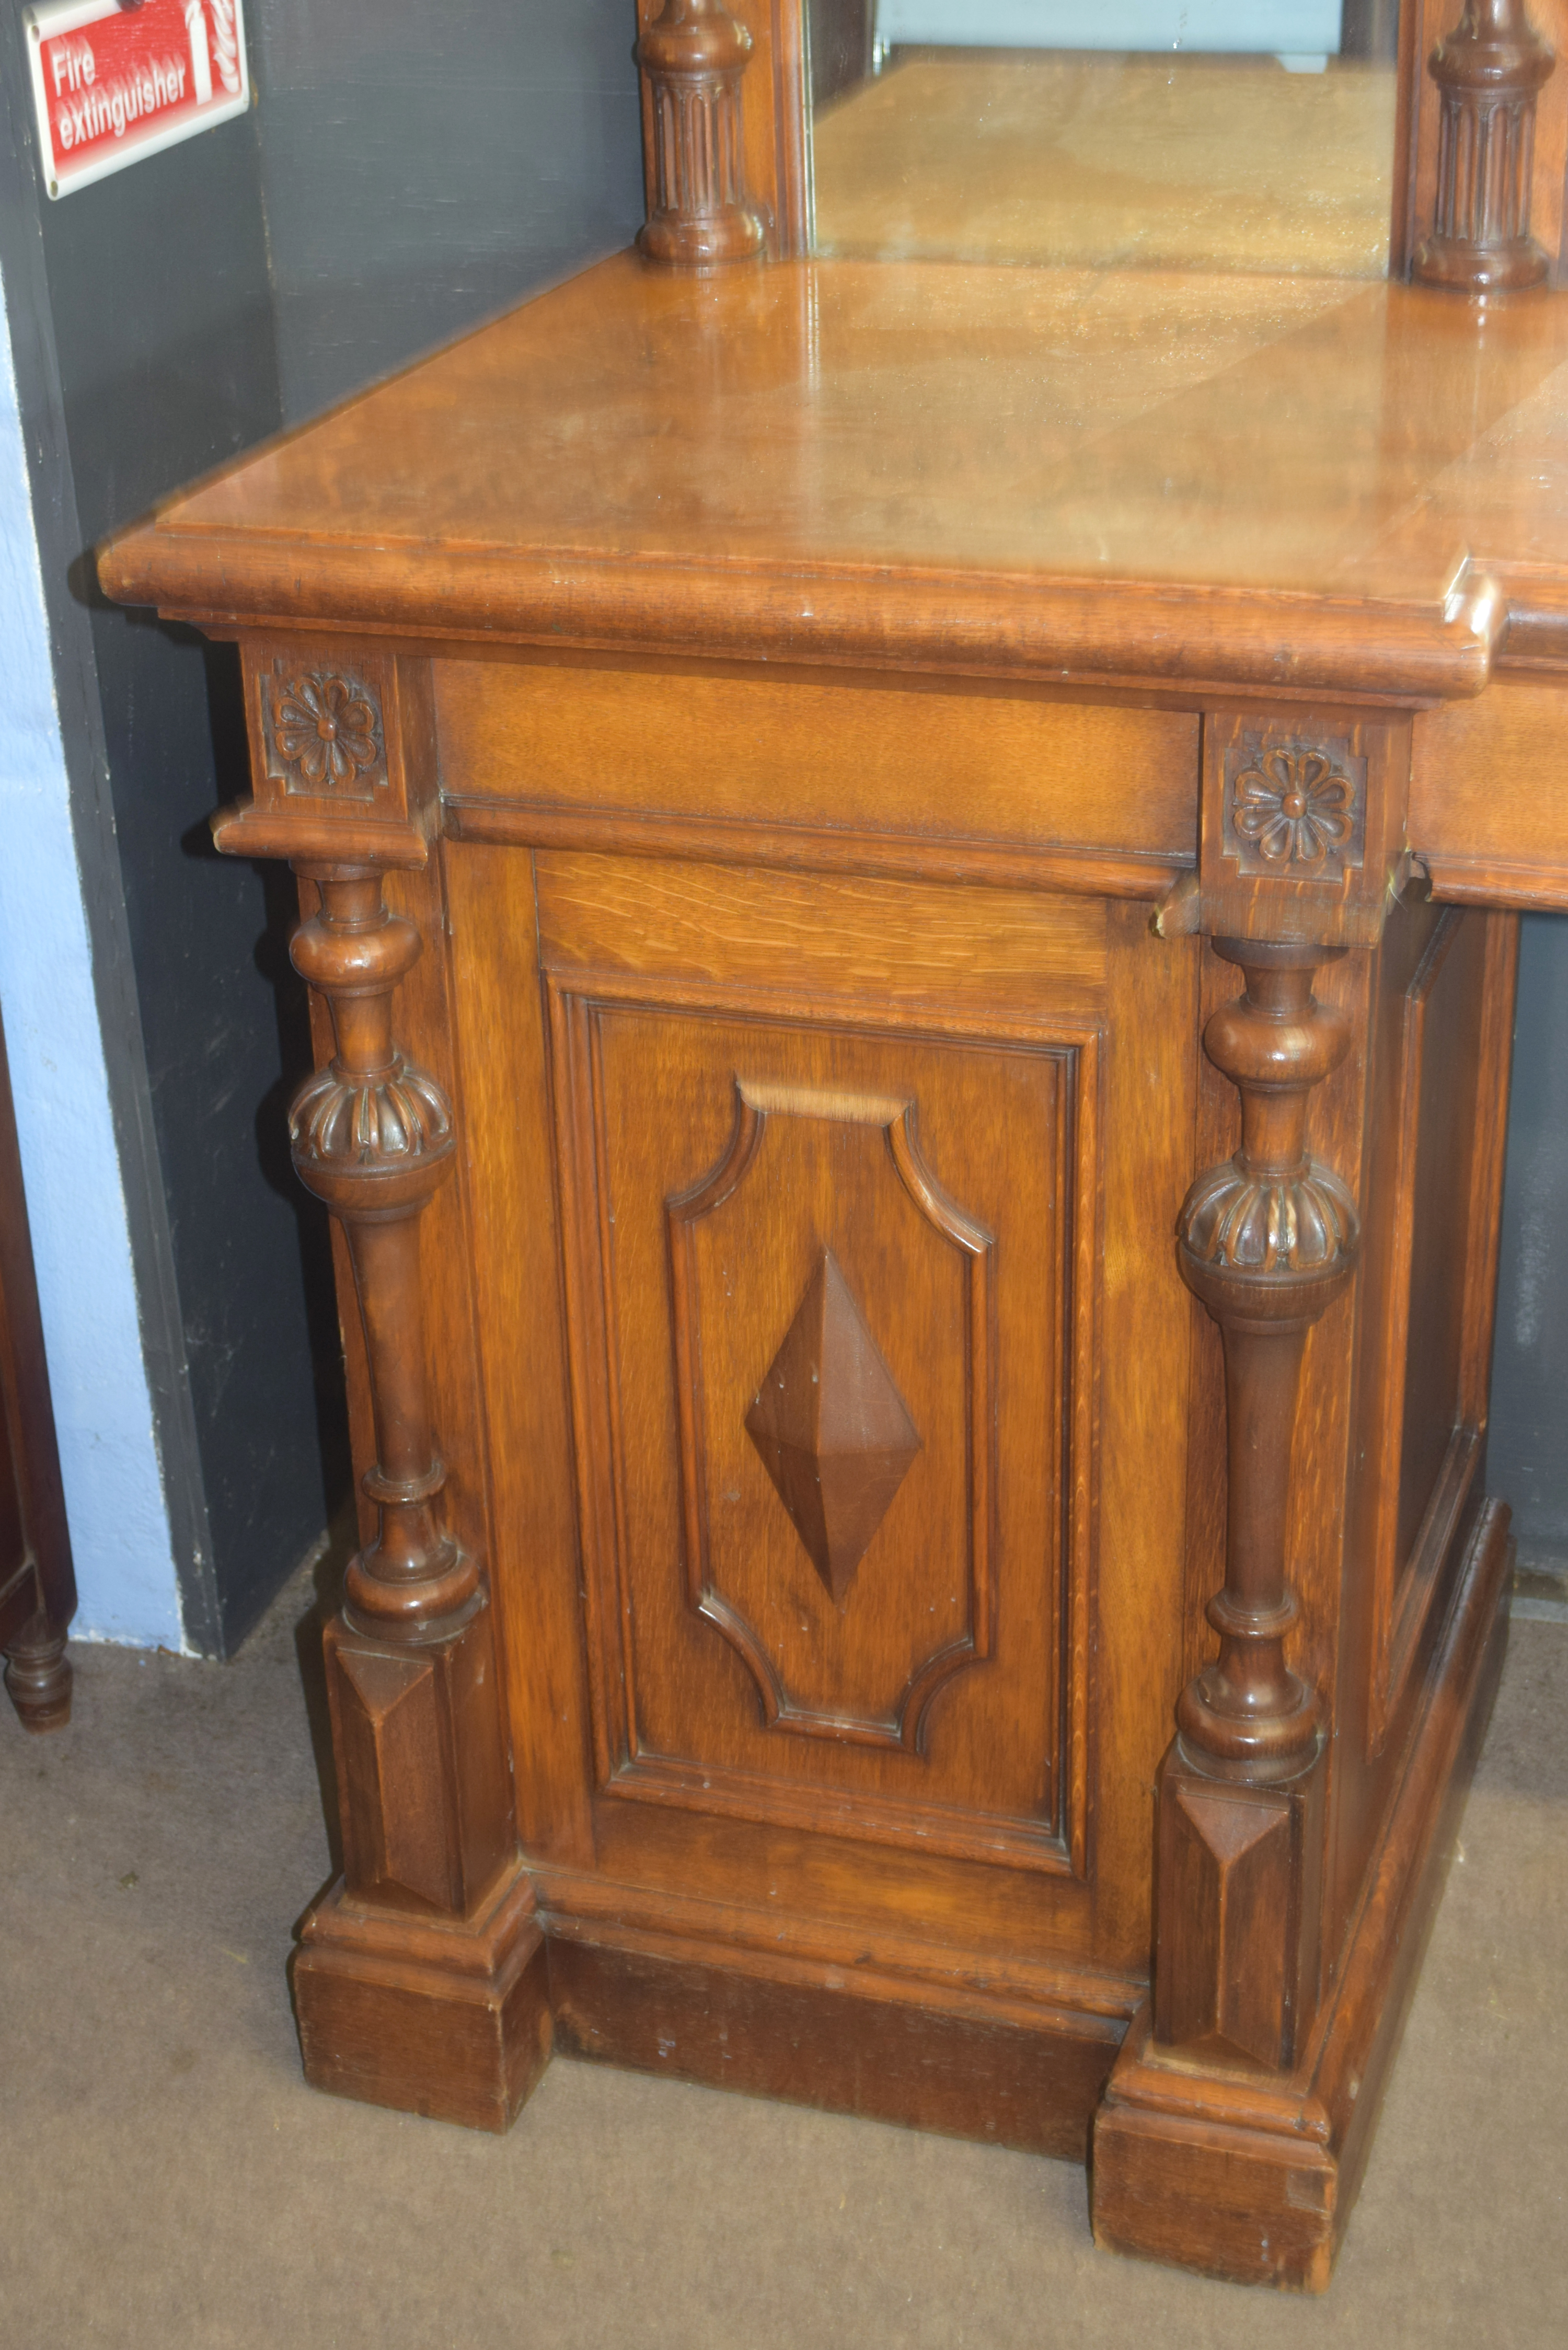 Very large and imposing Victorian Oak mirror back sideboard, back panel with three mirror plates and - Image 4 of 7